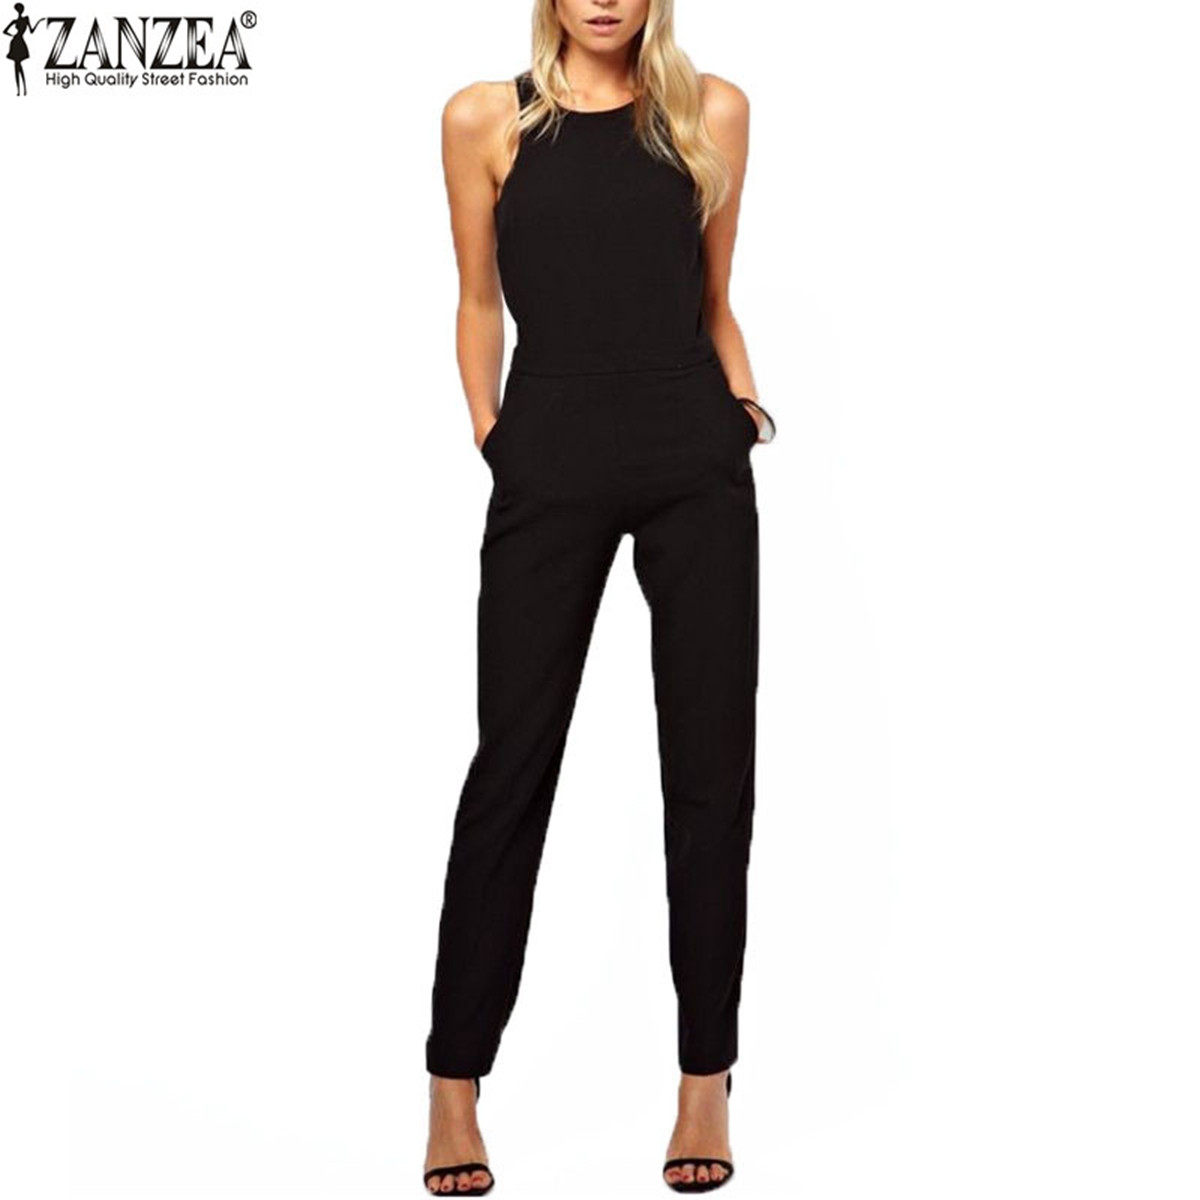 Zanzea Brand 2018 Summer Elegant Womens Rompers Jumpsuit Casual Solid Bodysuit Sleeveless Crew Neck Long Playsuits Plus Size